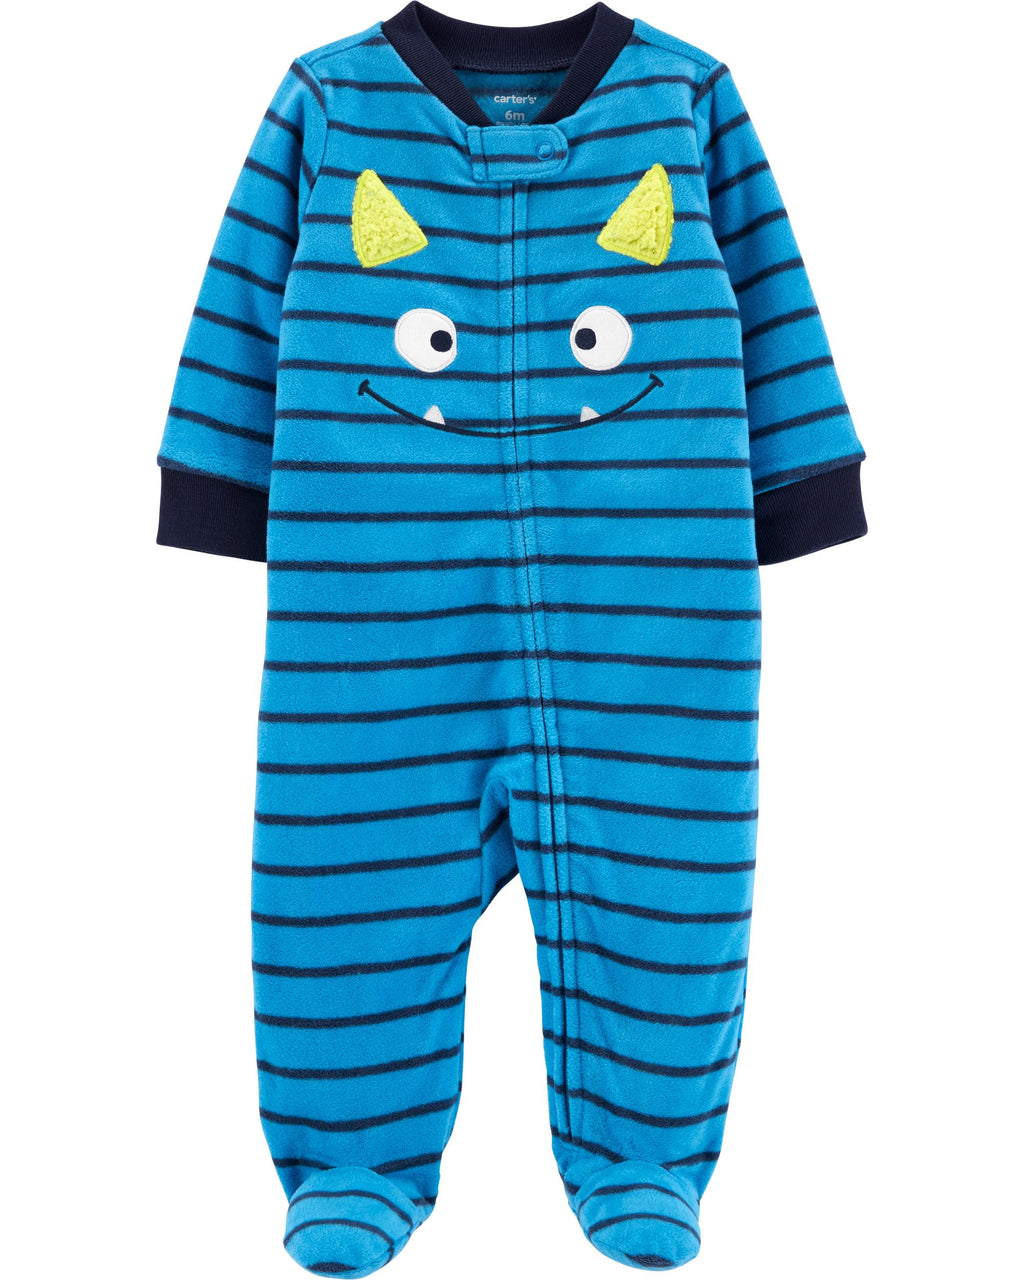 Enterito CARTERS Monster Zip-Up Fleece Sleep & Play